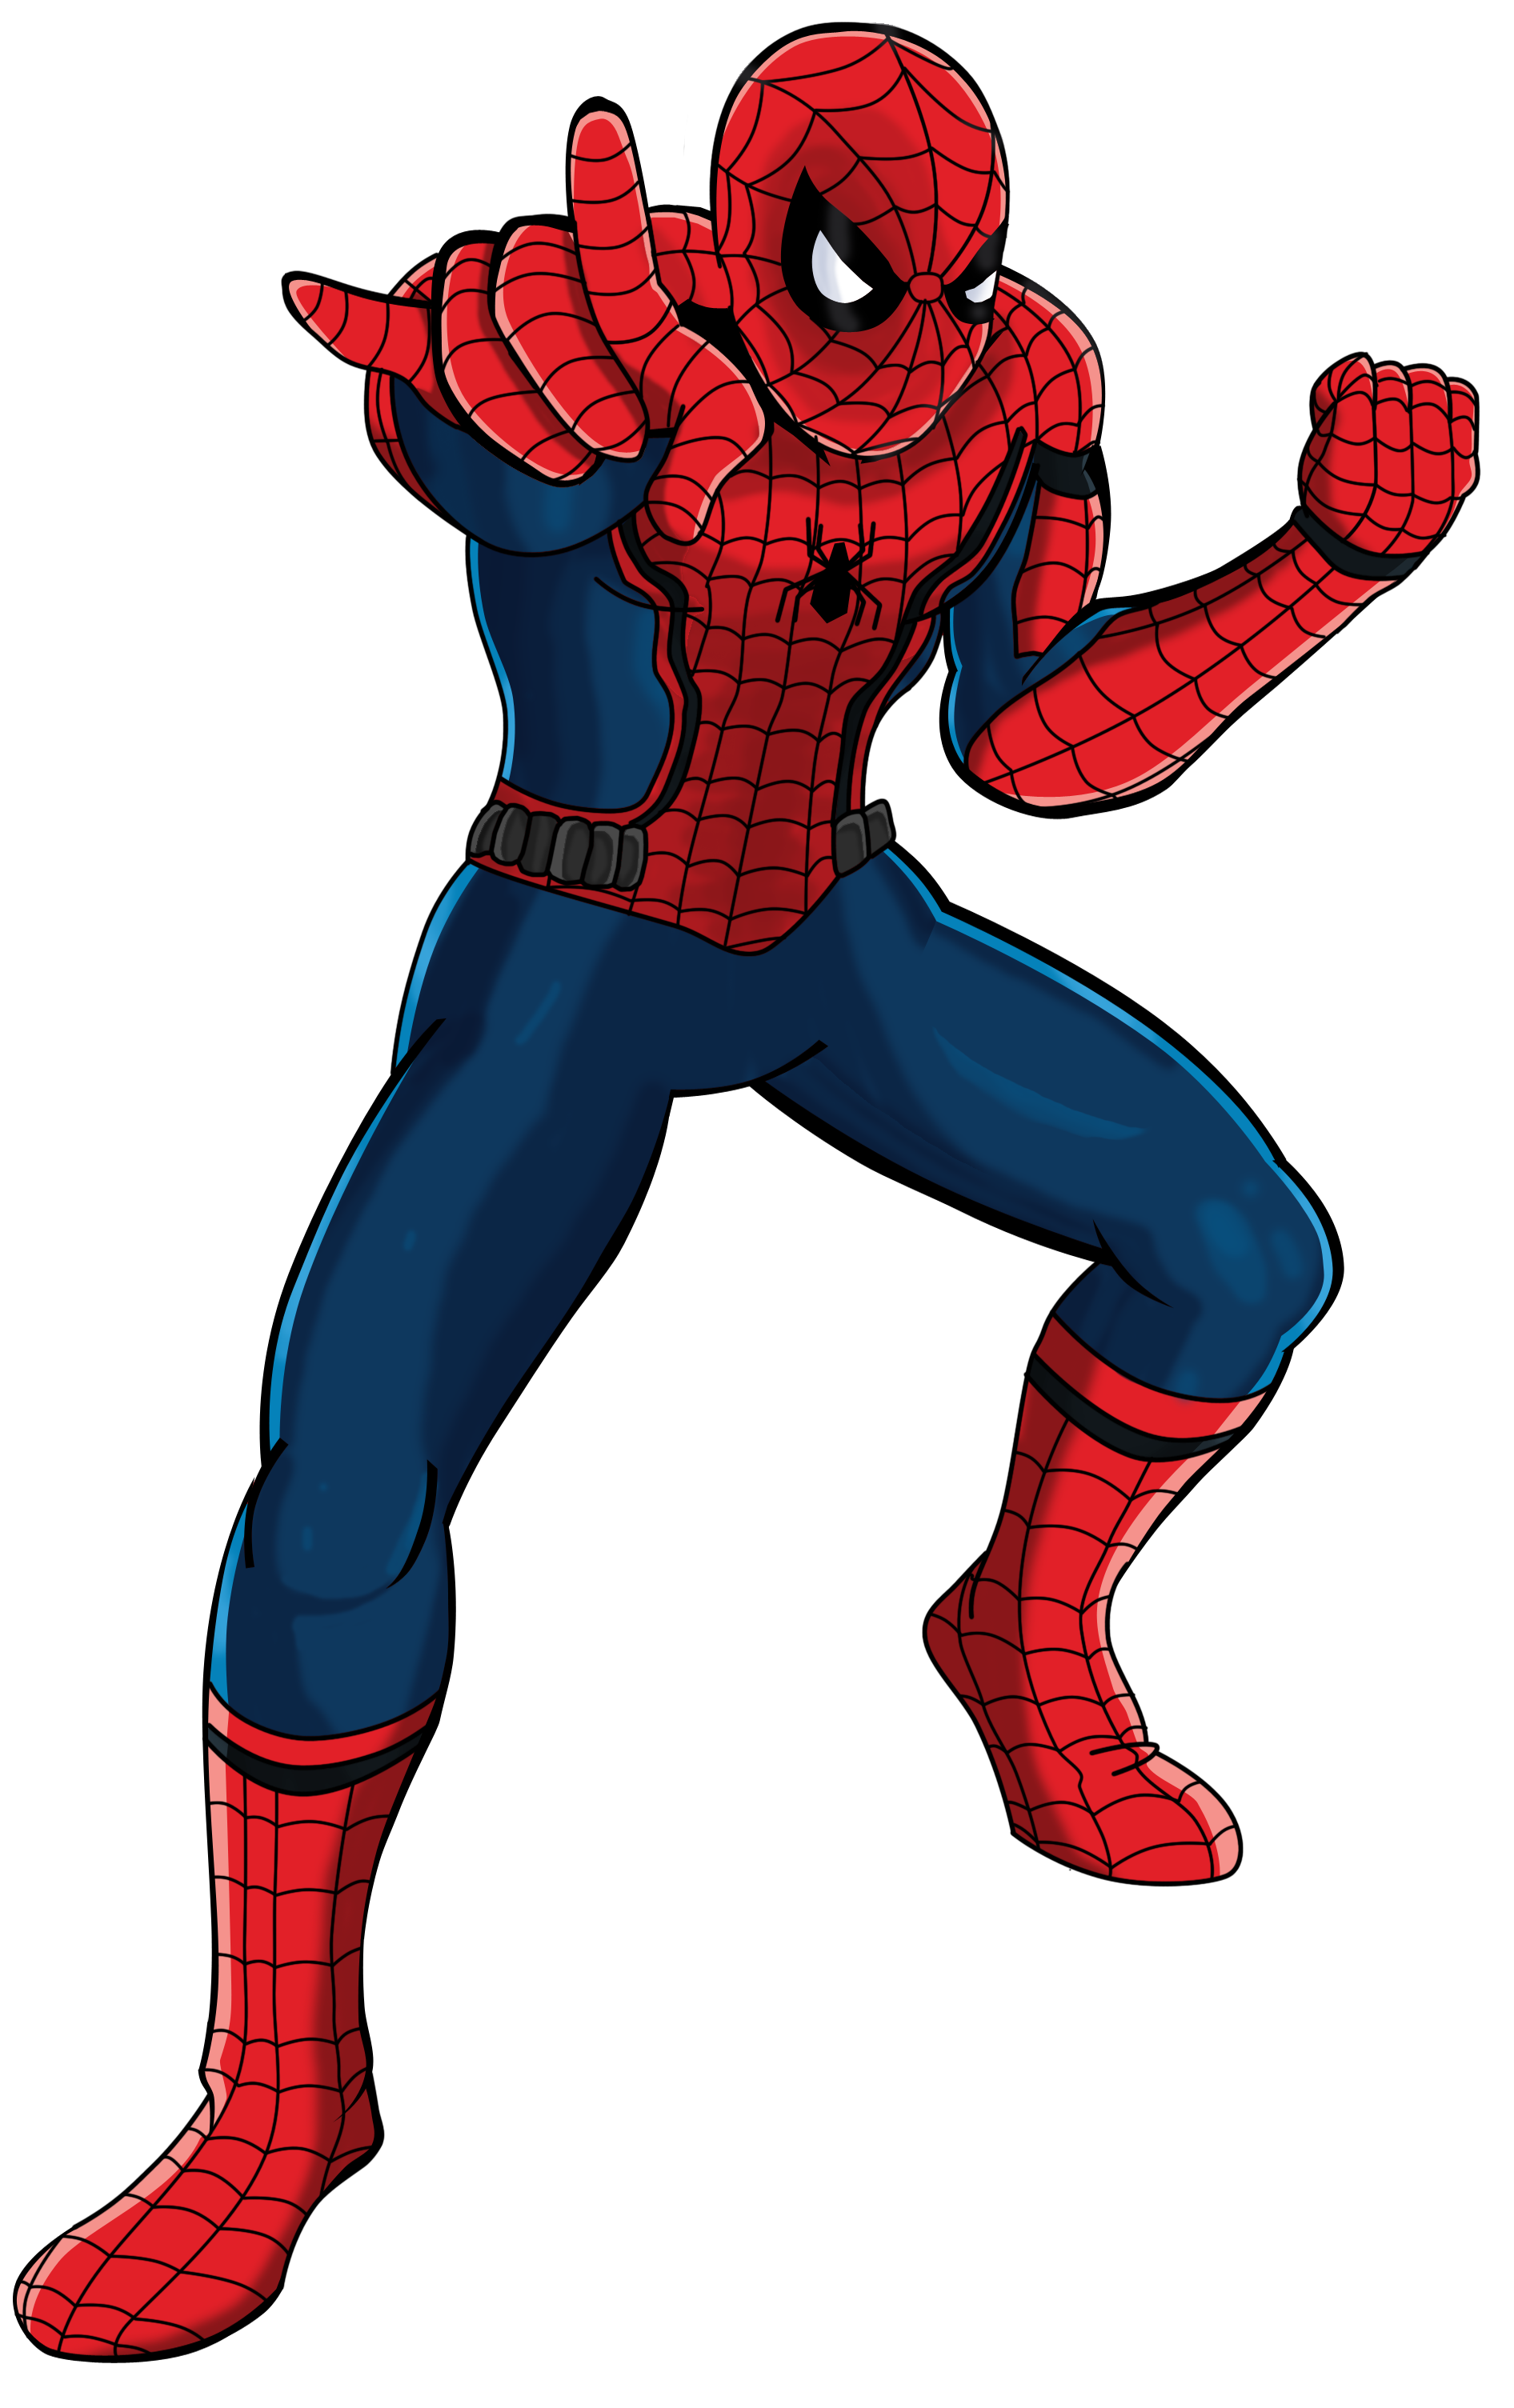 Spiderman pictures images graphics page 5 - Image spiderman ...